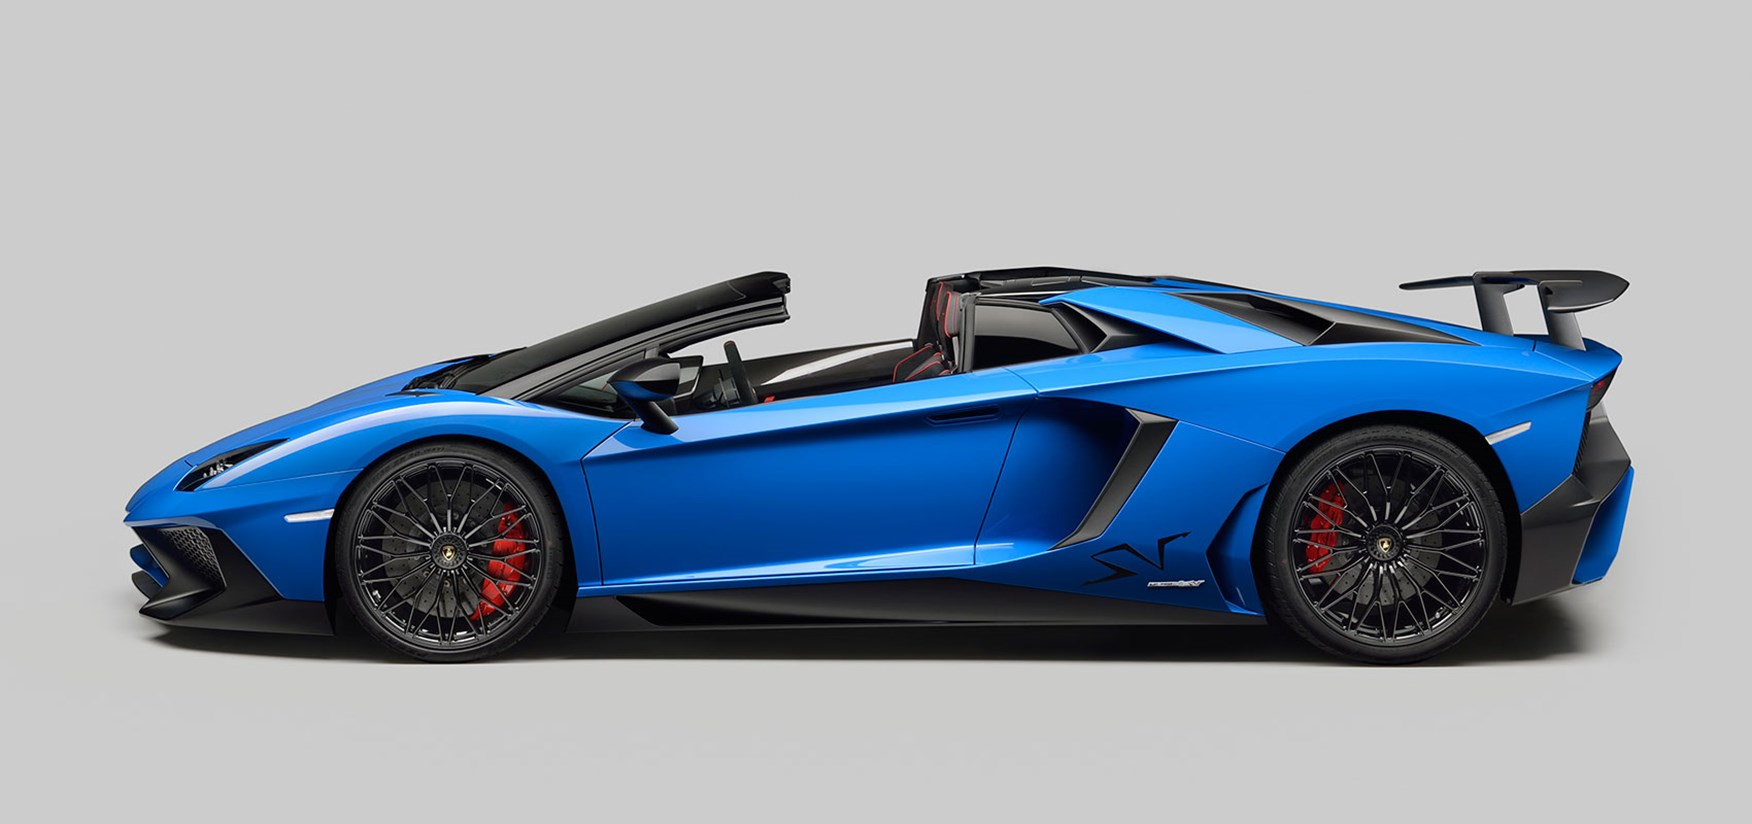 lamborghini aventador super veloce roadster (2016): the sv blows